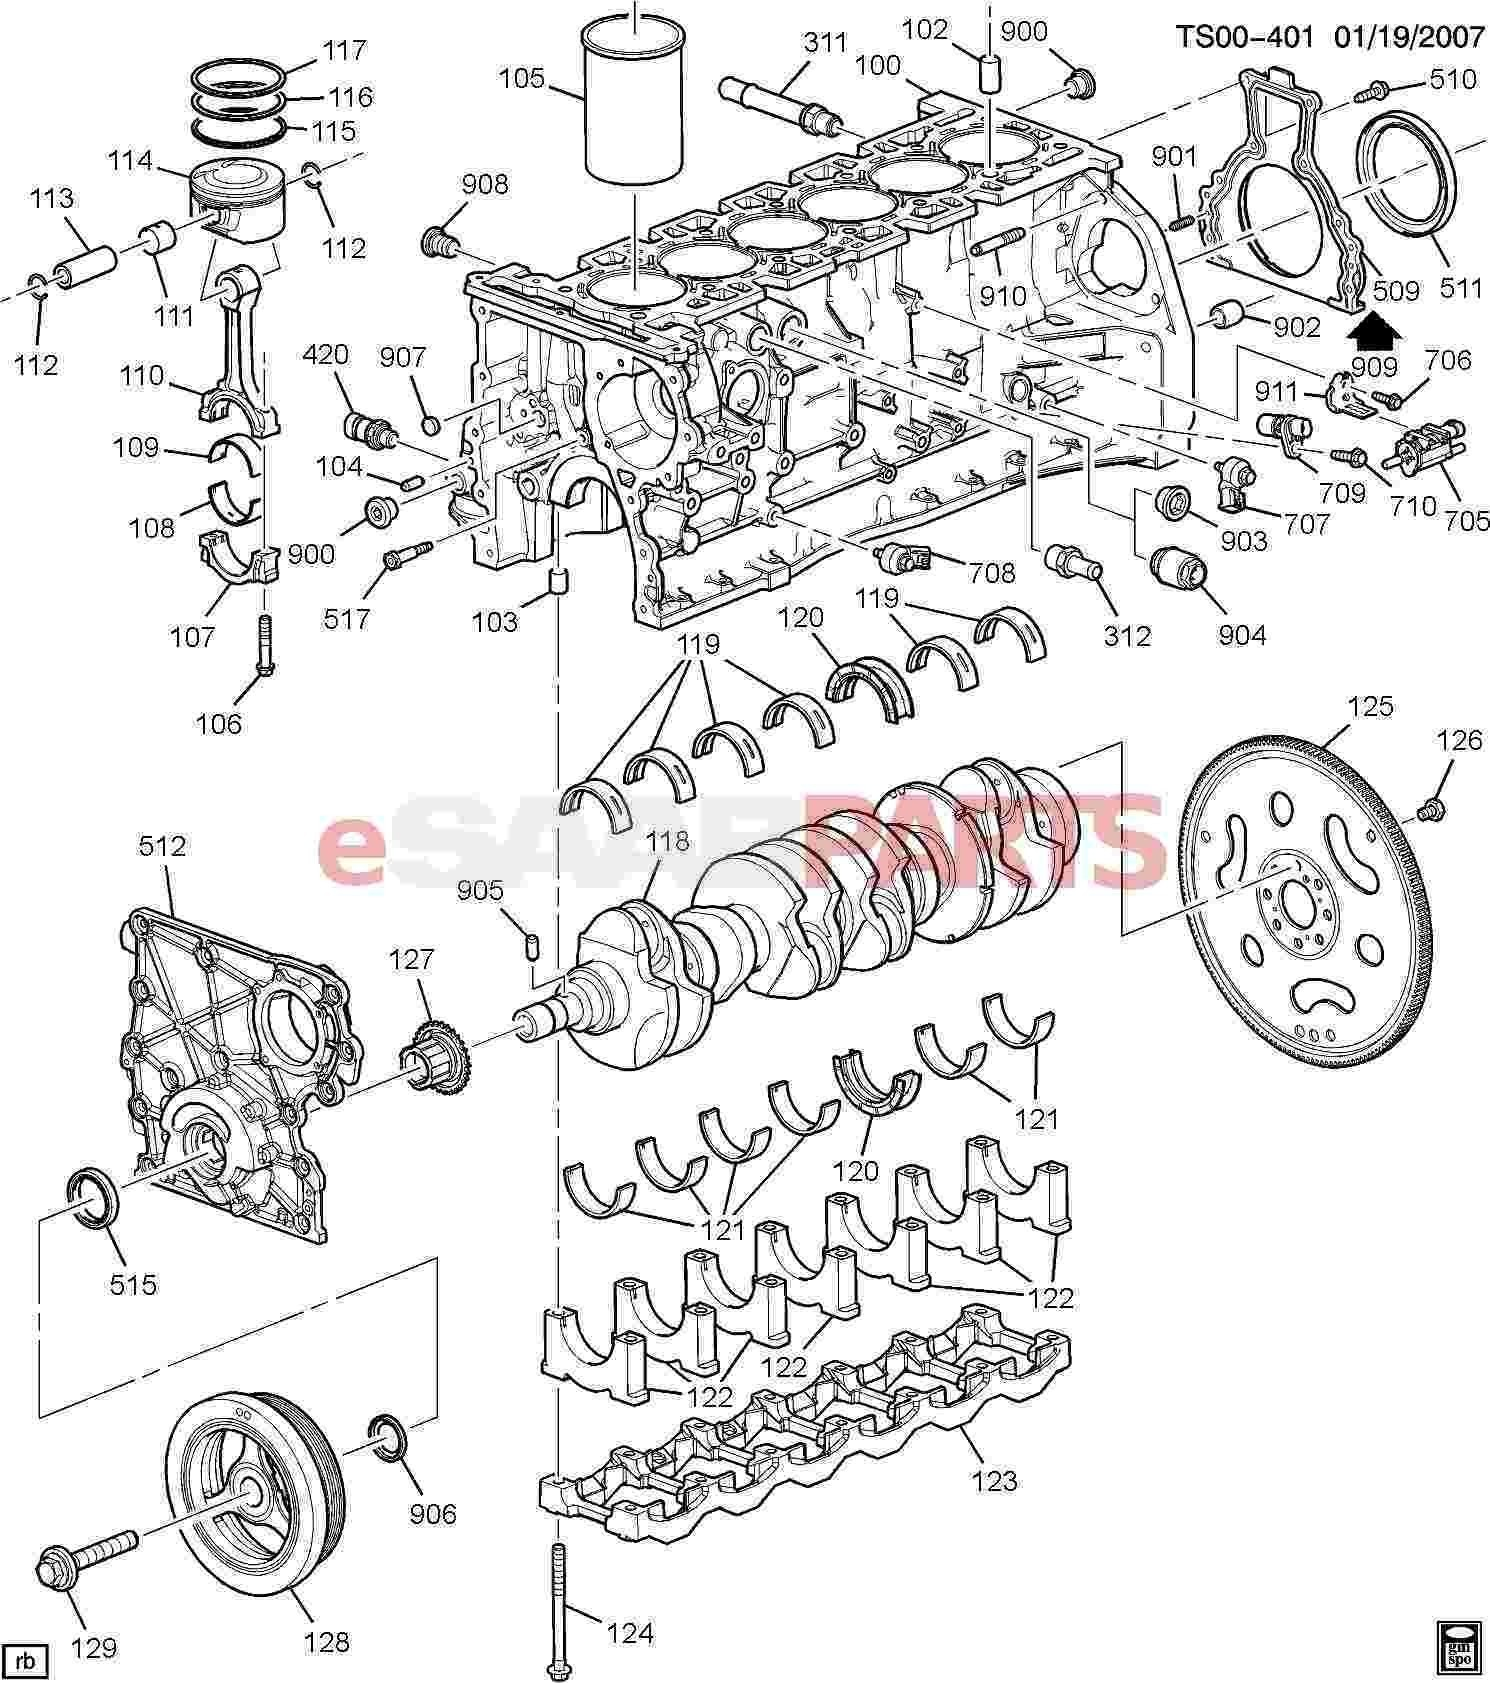 Parts Of Engine Diagram Car Parts Labeled Diagram Of Parts Of Engine Diagram  2004 Mazda Rx8